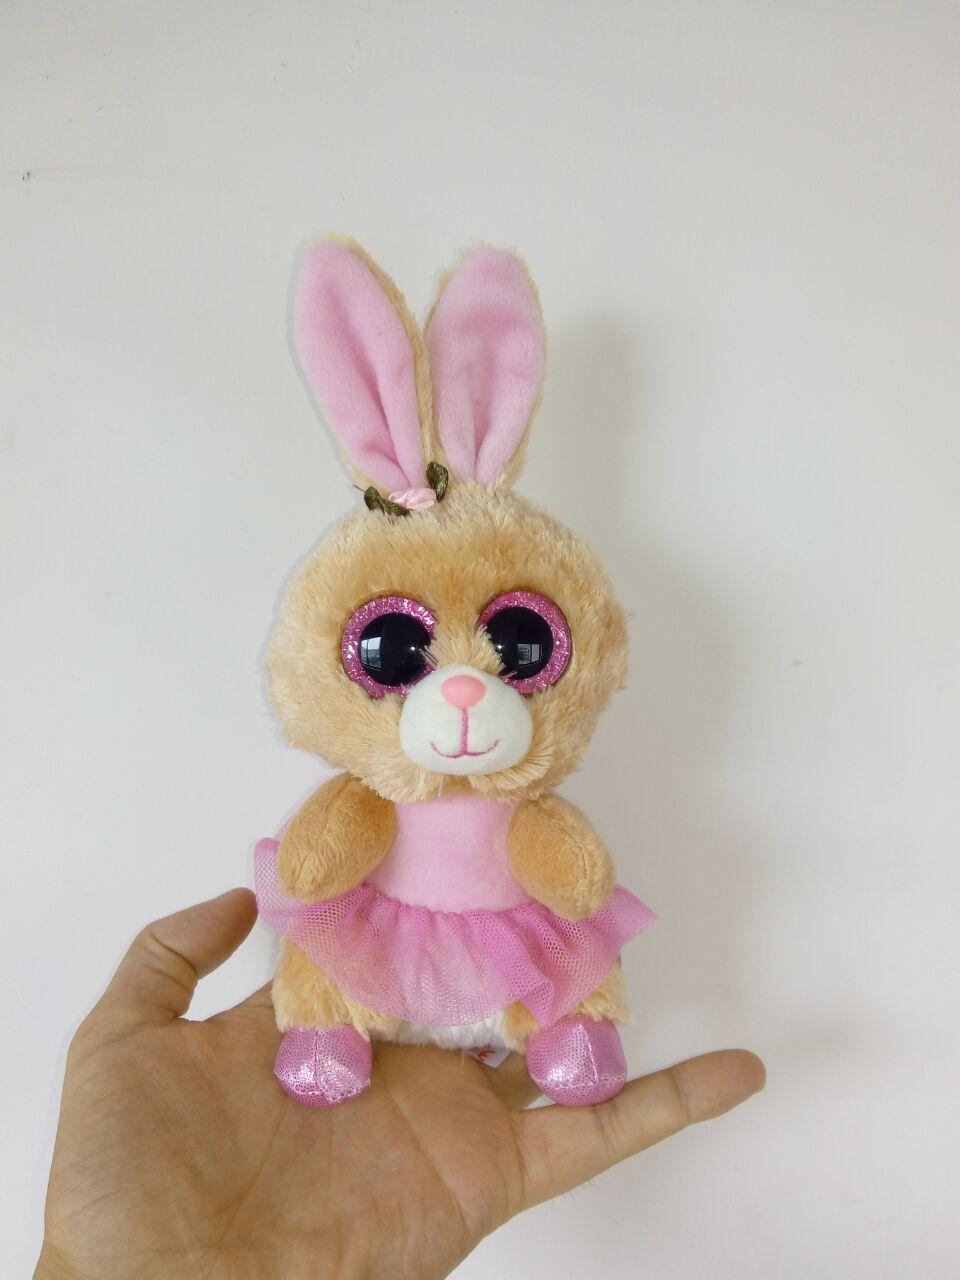 2019 Big Eyes Beanie Boos Kids Ty Stuffed Plush Toys Colorful Muslin Skirt  Rabbit Bunny Lovely Birthday Gift Kawaii Cute Animals Doll From  Ouronlinelife aa6a9bae336c